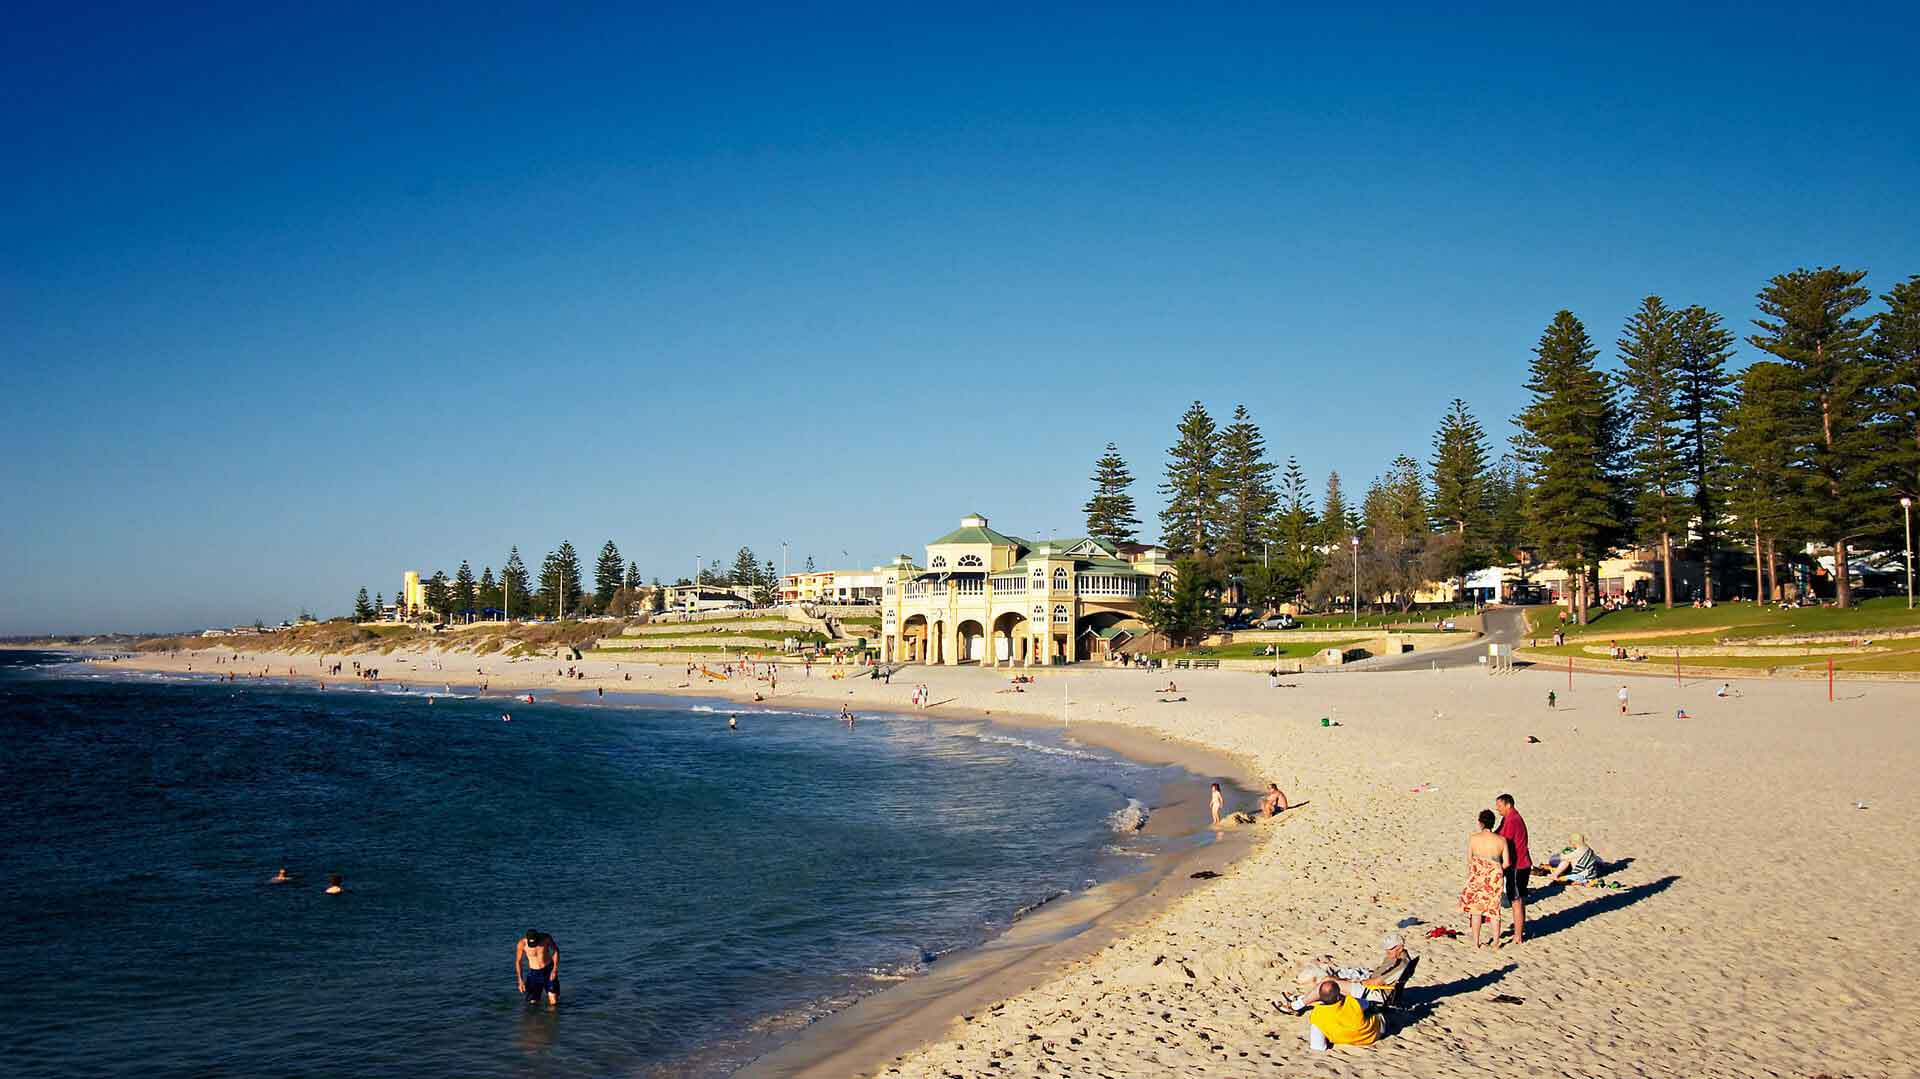 fremantle chatrooms Find gay ads in our flatshare & houseshare category from perth region, wa buy and sell almost anything on gumtree classifieds.